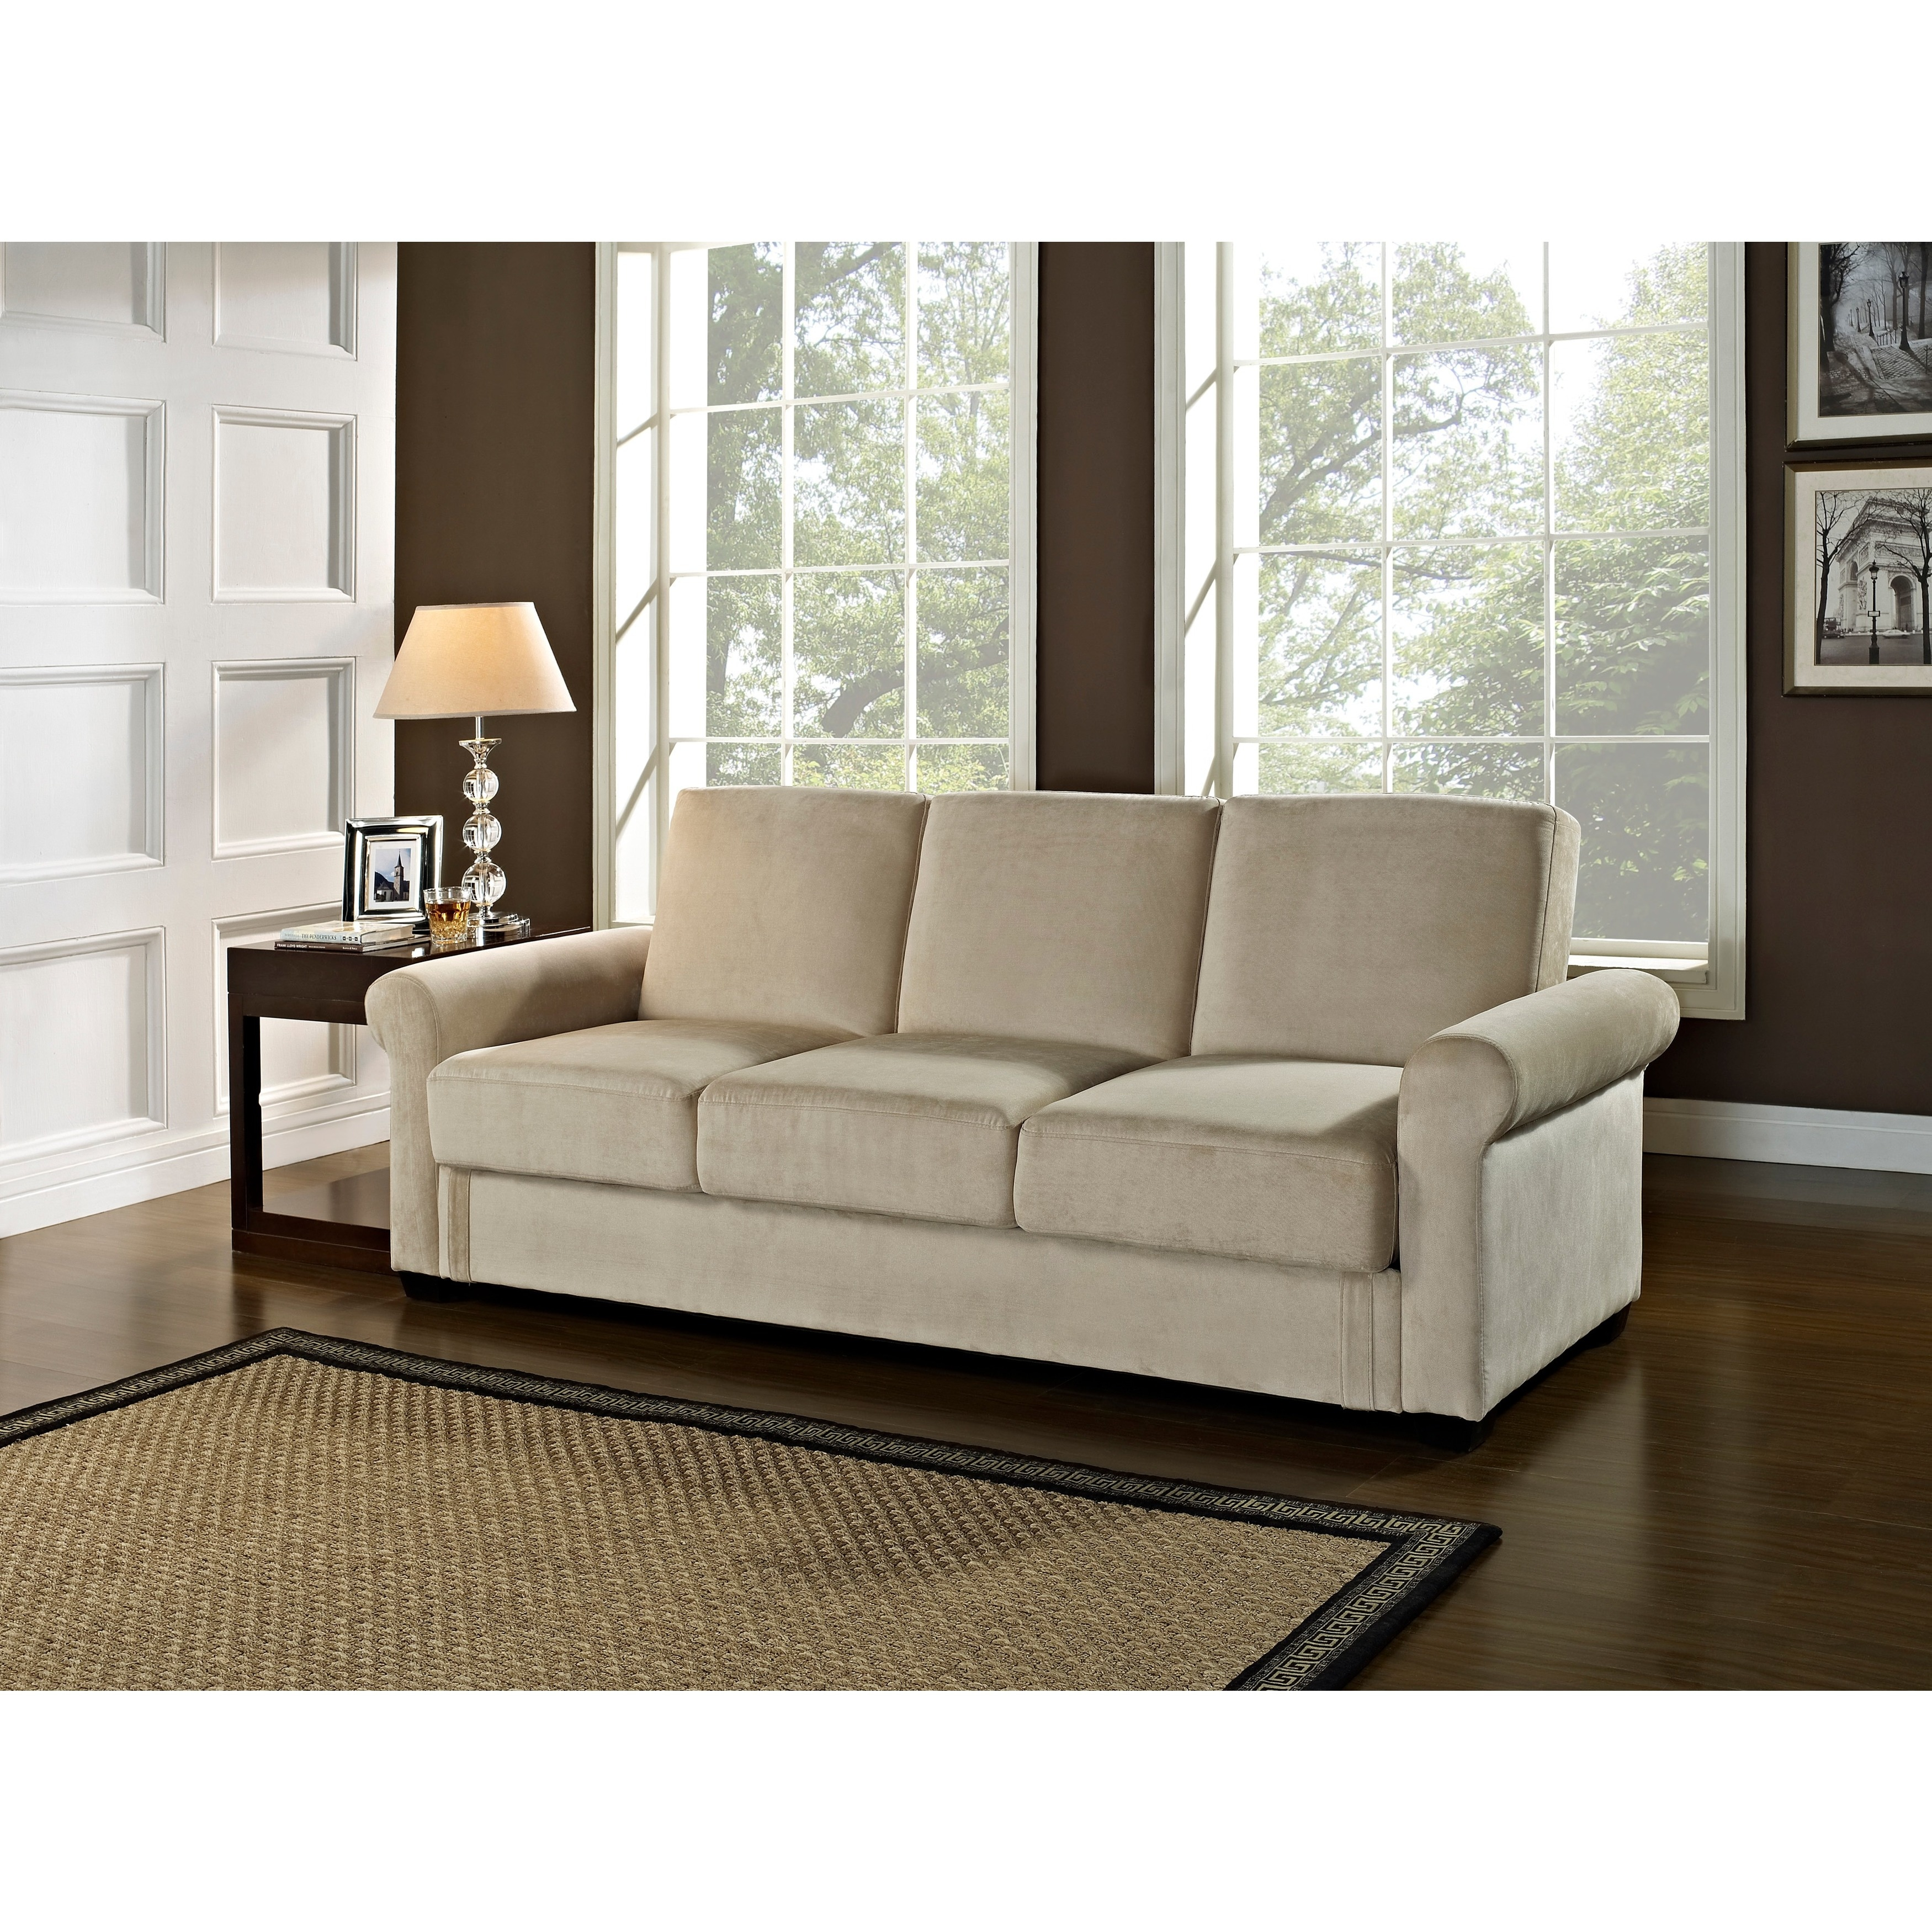 Serta Toronto Convertible Sofa by Lifestyle Solutions (Li...